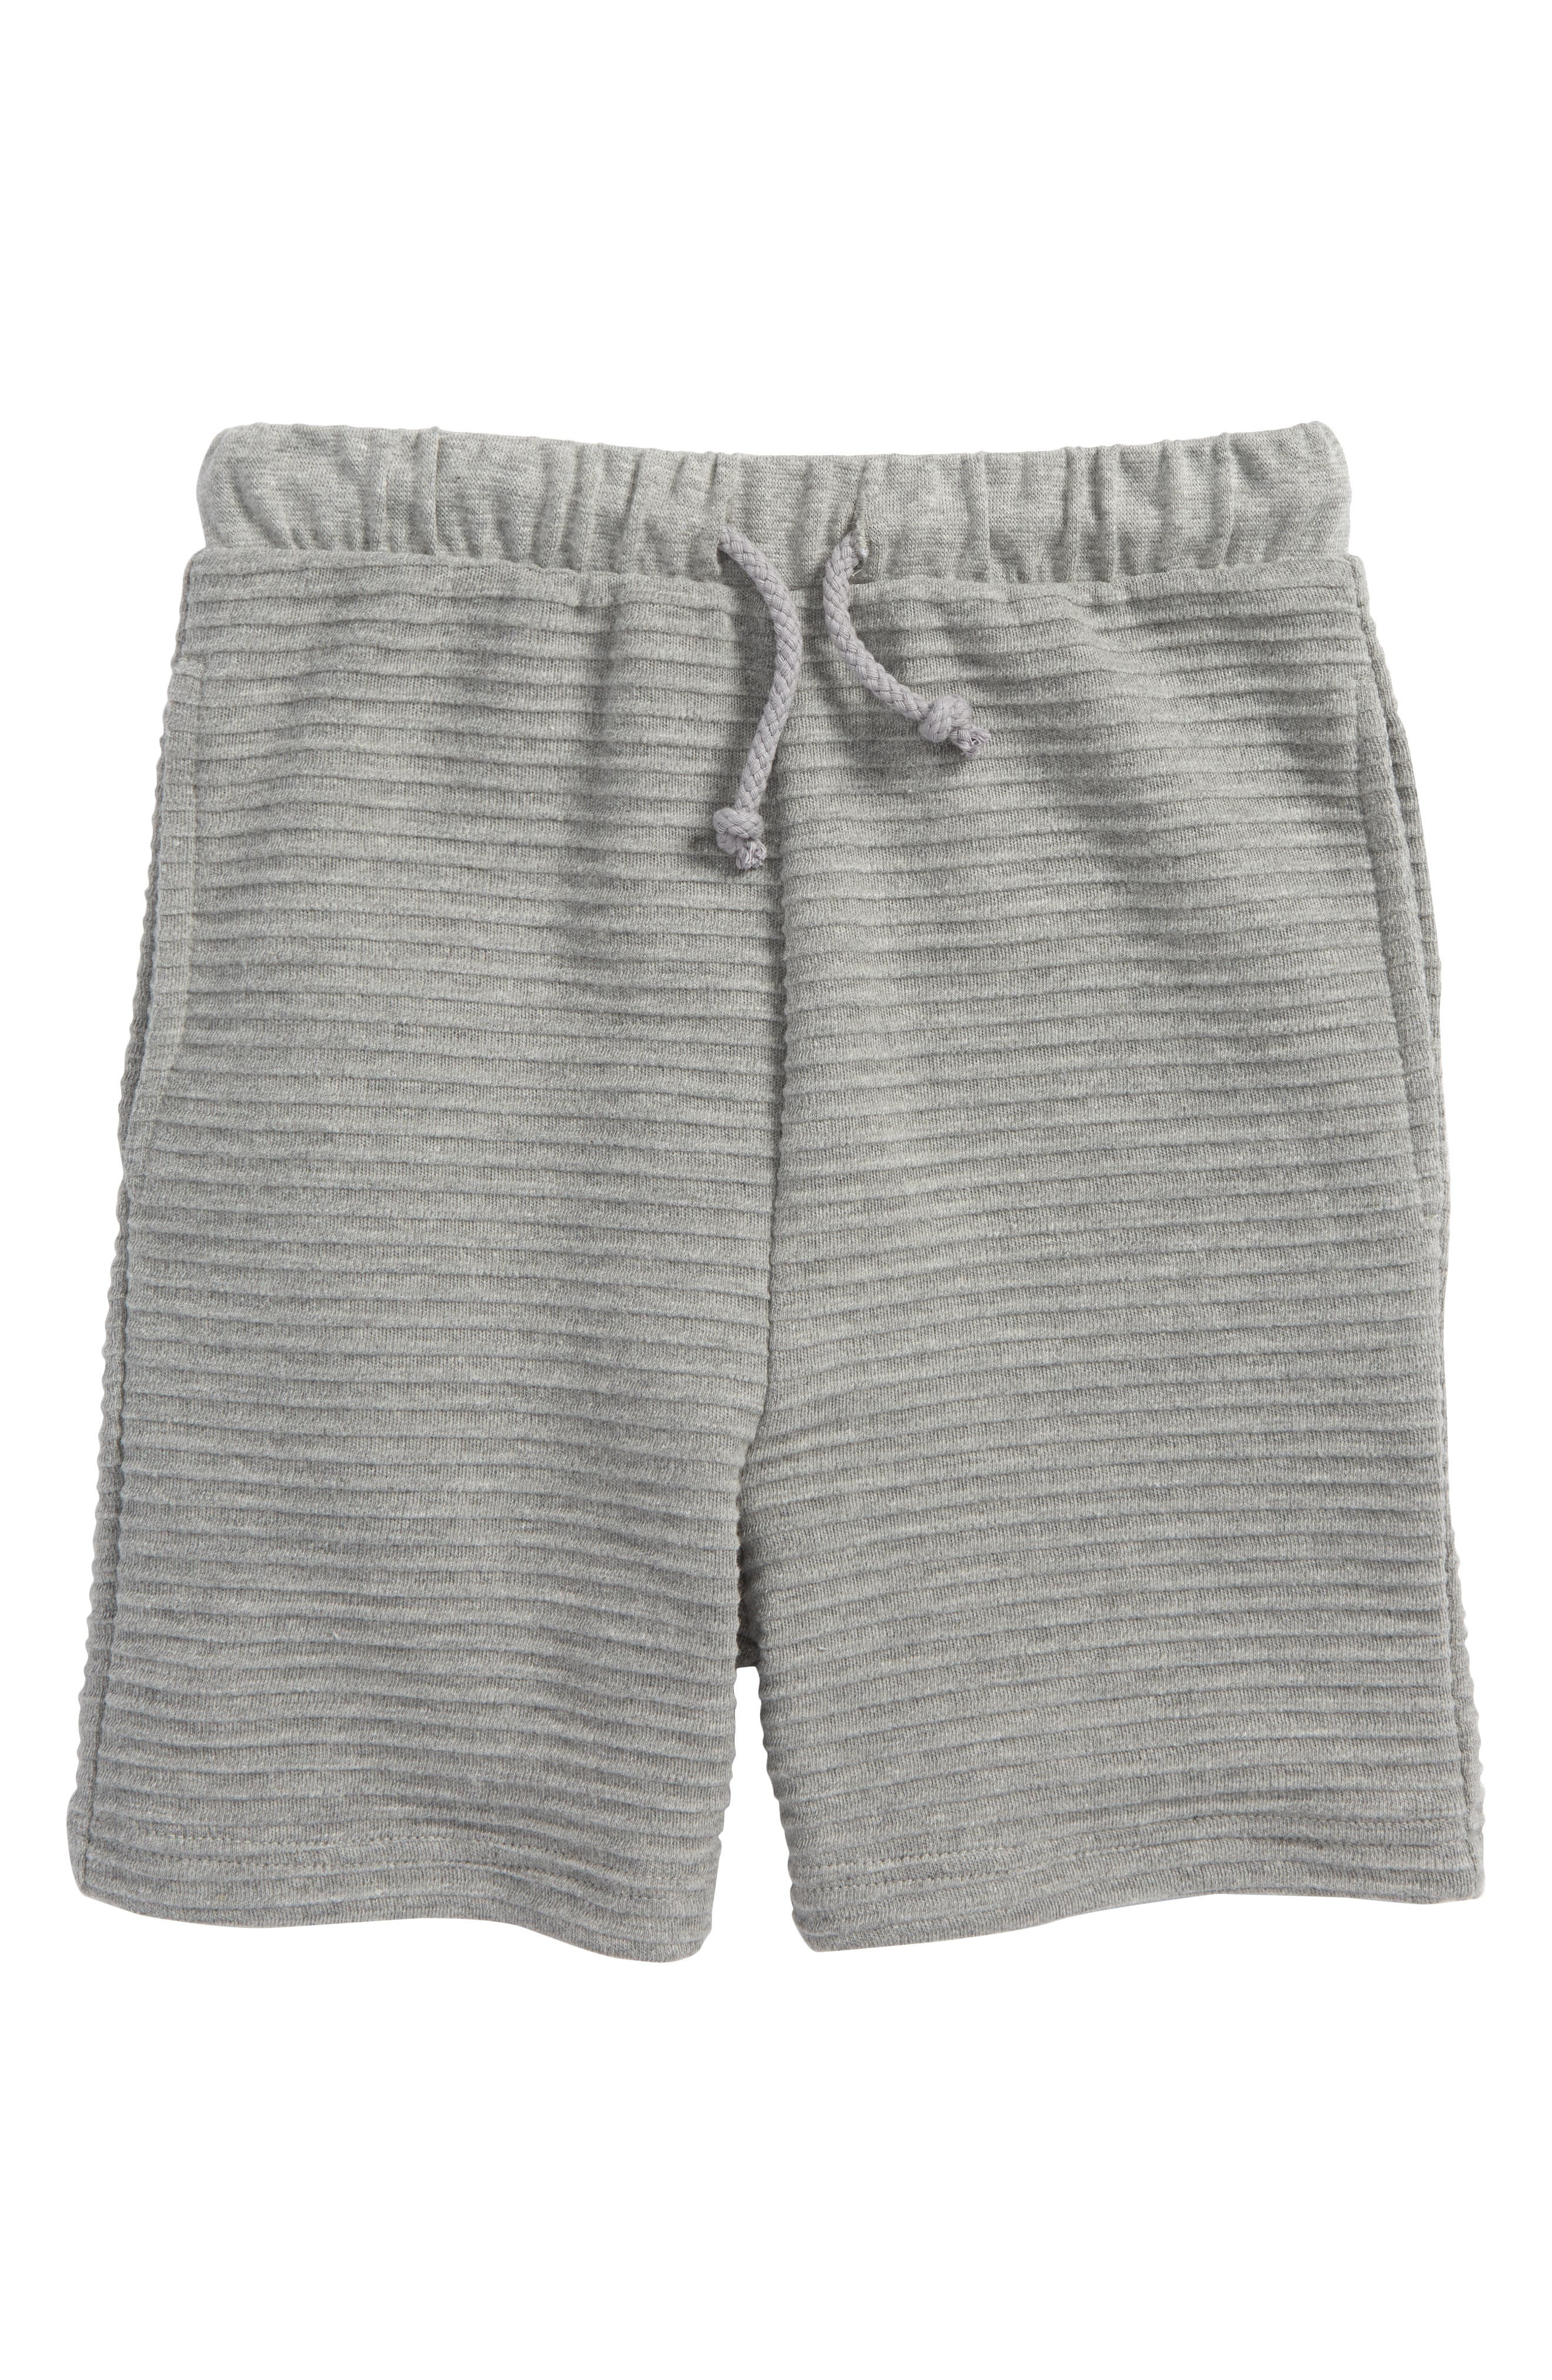 Freddie Knit Shorts,                             Main thumbnail 1, color,                             GREY MELANGE